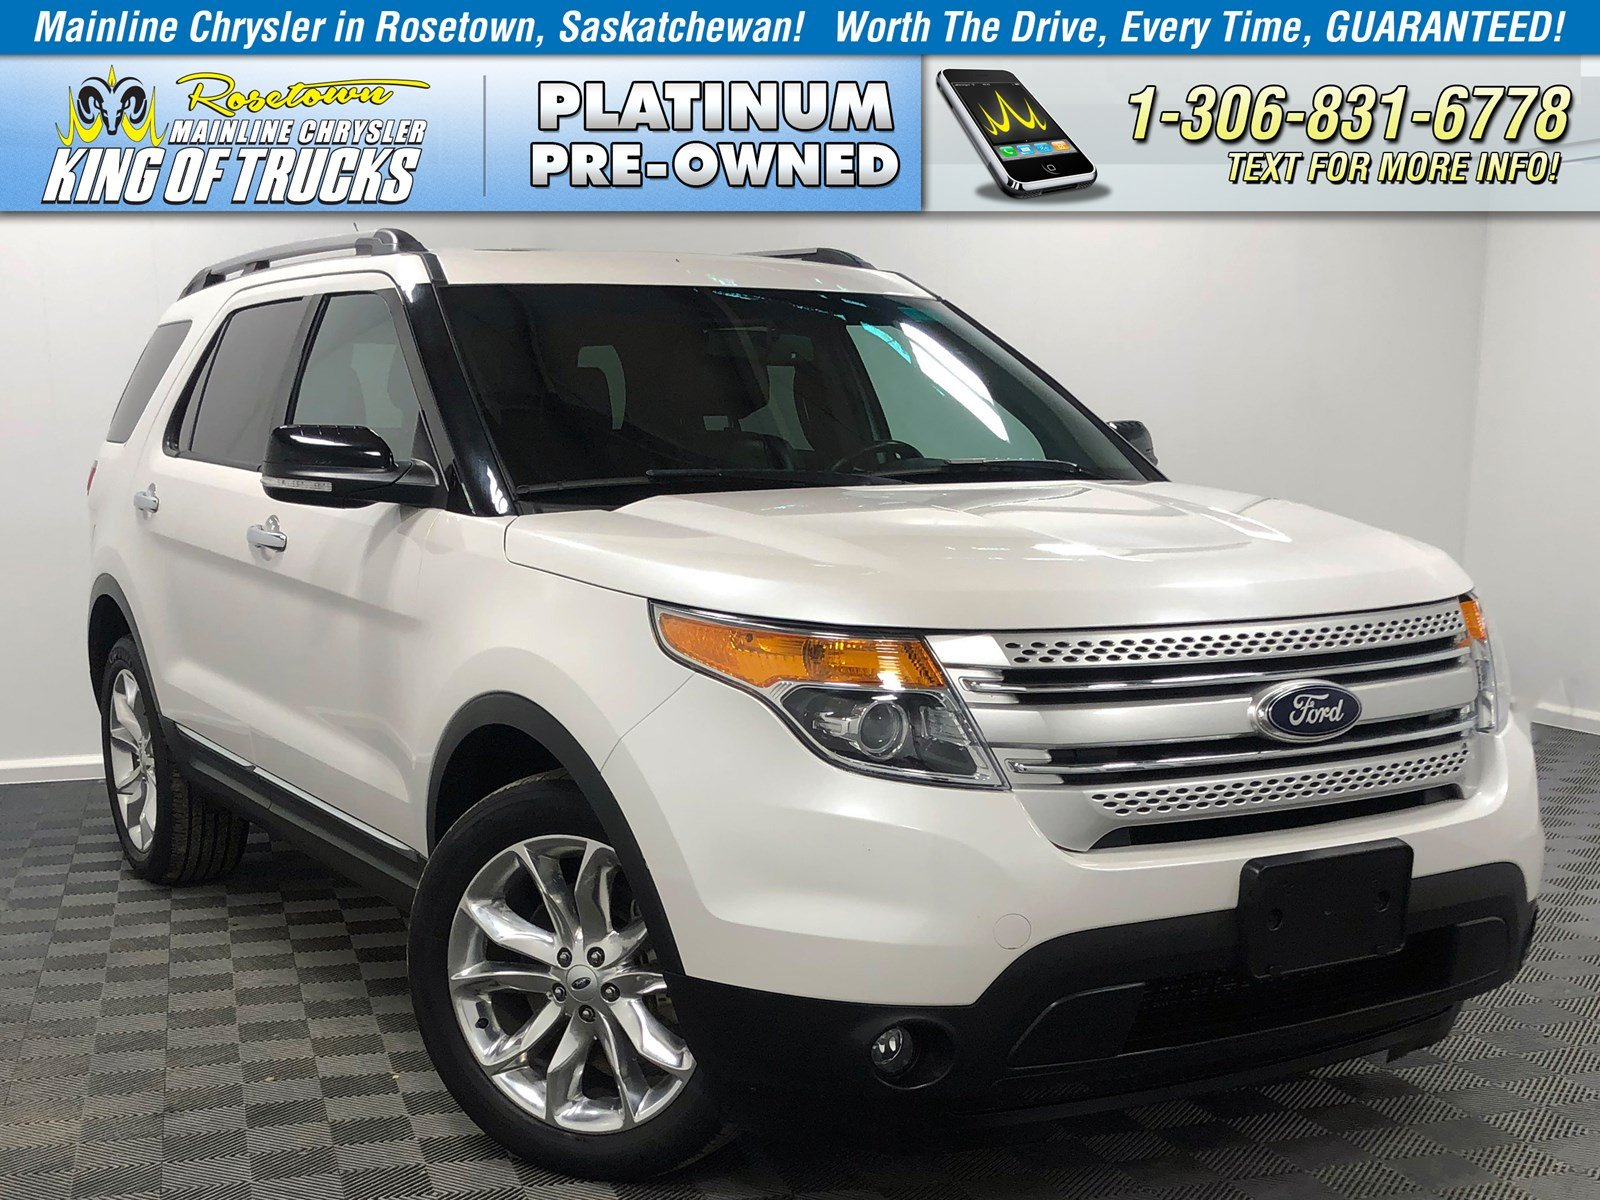 2013 Ford Explorer Xlt >> Pre Owned 2013 Ford Explorer Xlt Great Price Must See